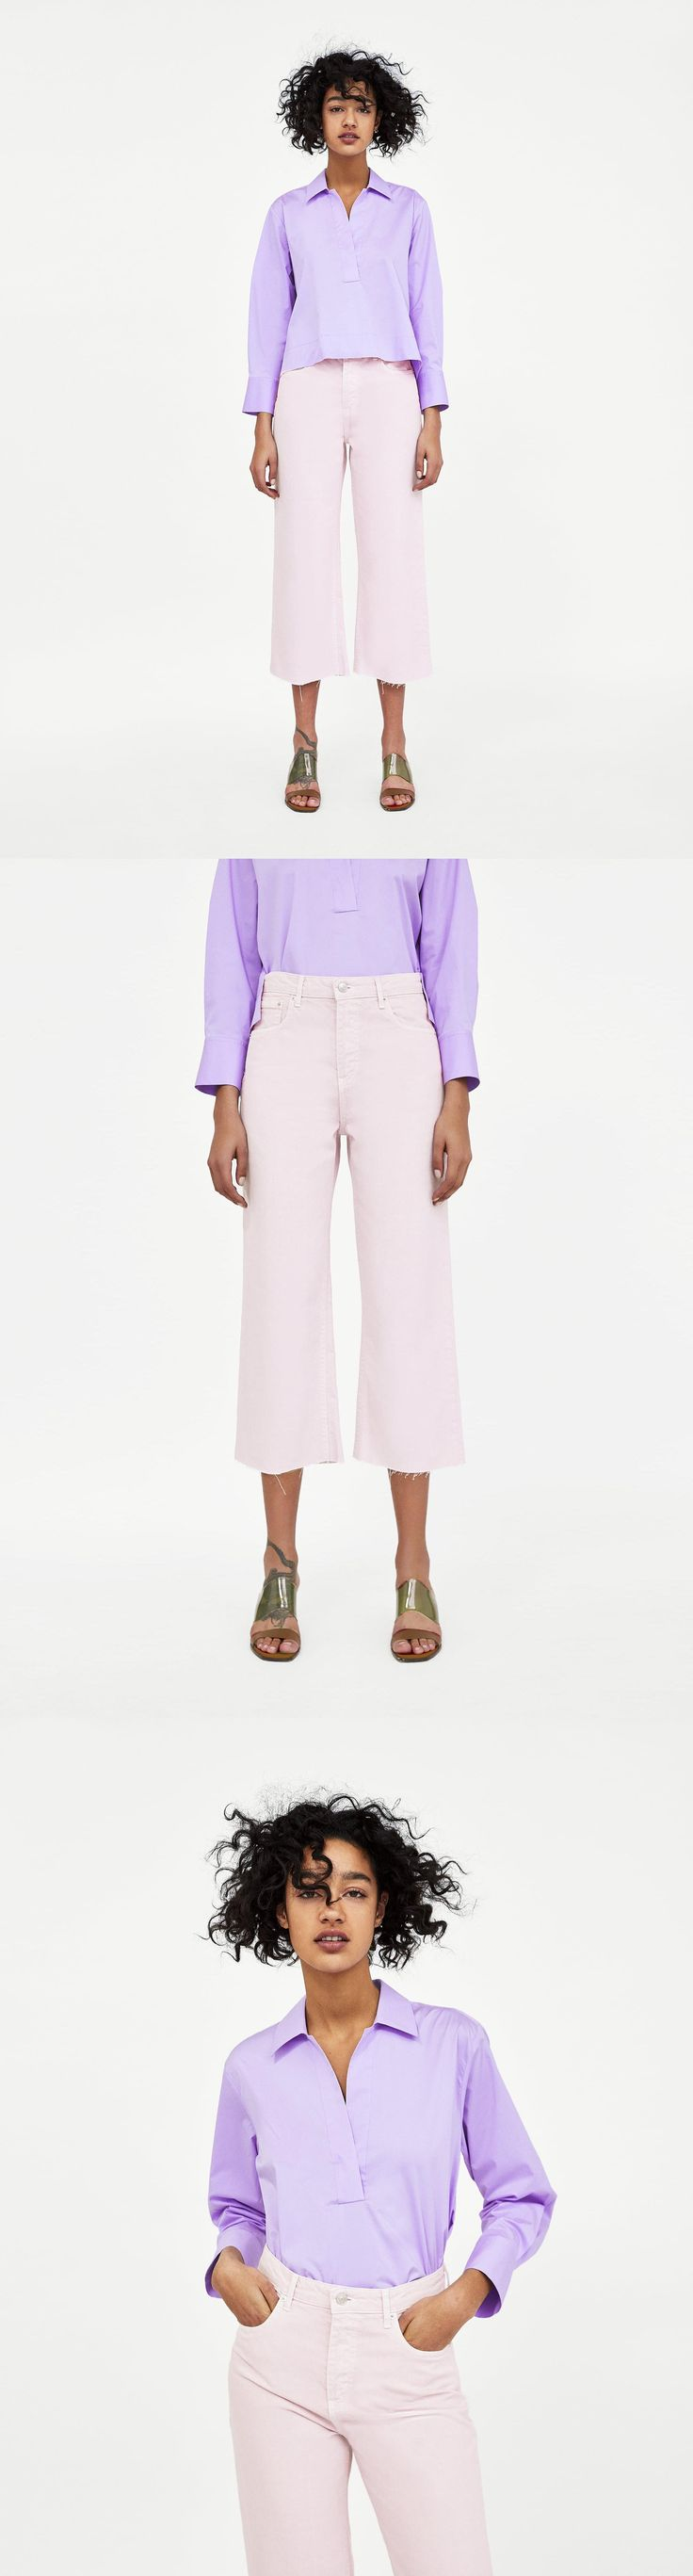 Jeans High Waist Culotte Lilac // 49.90 USD // Zara // The High Waist Culotte in Lilac. High waist, straight leg culottes. Light faded effect. They feature five pockets and metal zip and top button fastening in the front. HEIGHT OF MODEL: 178 CM / 5′ 10″